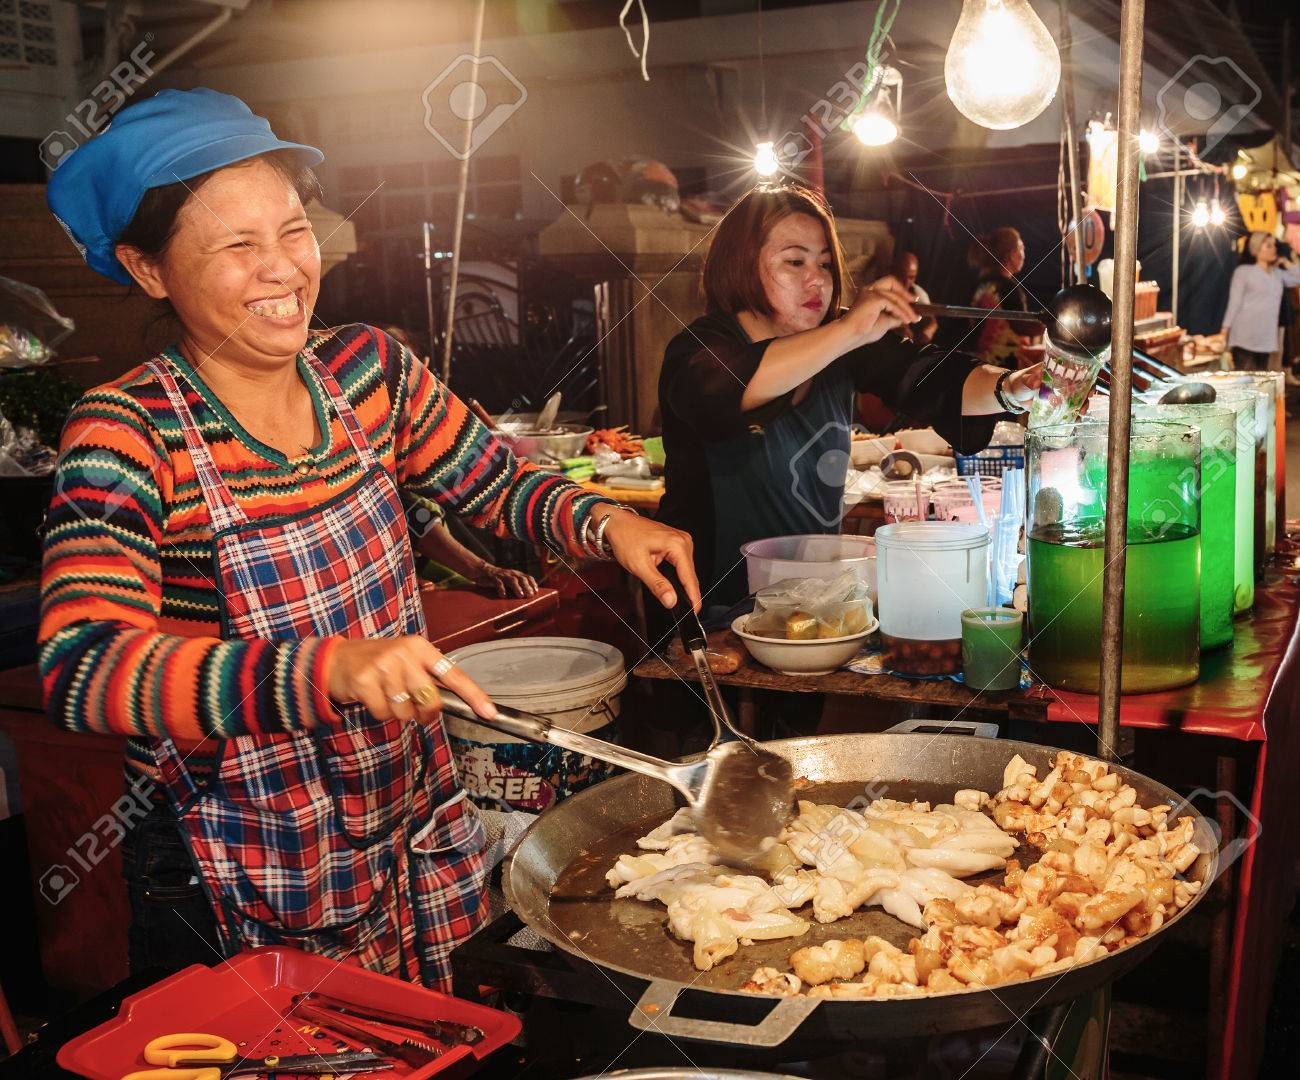 PATTAYA, THAILAND - APRIL 4, 2015: Woman in a street cafe fry food and smiling - 38893495